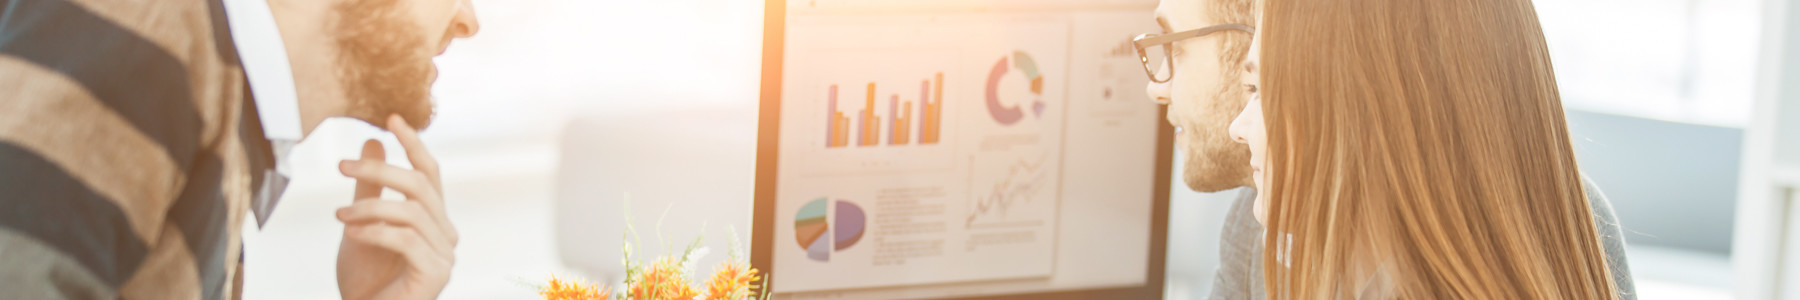 Analytics and Reporting Software. ERP Analytics Solution.